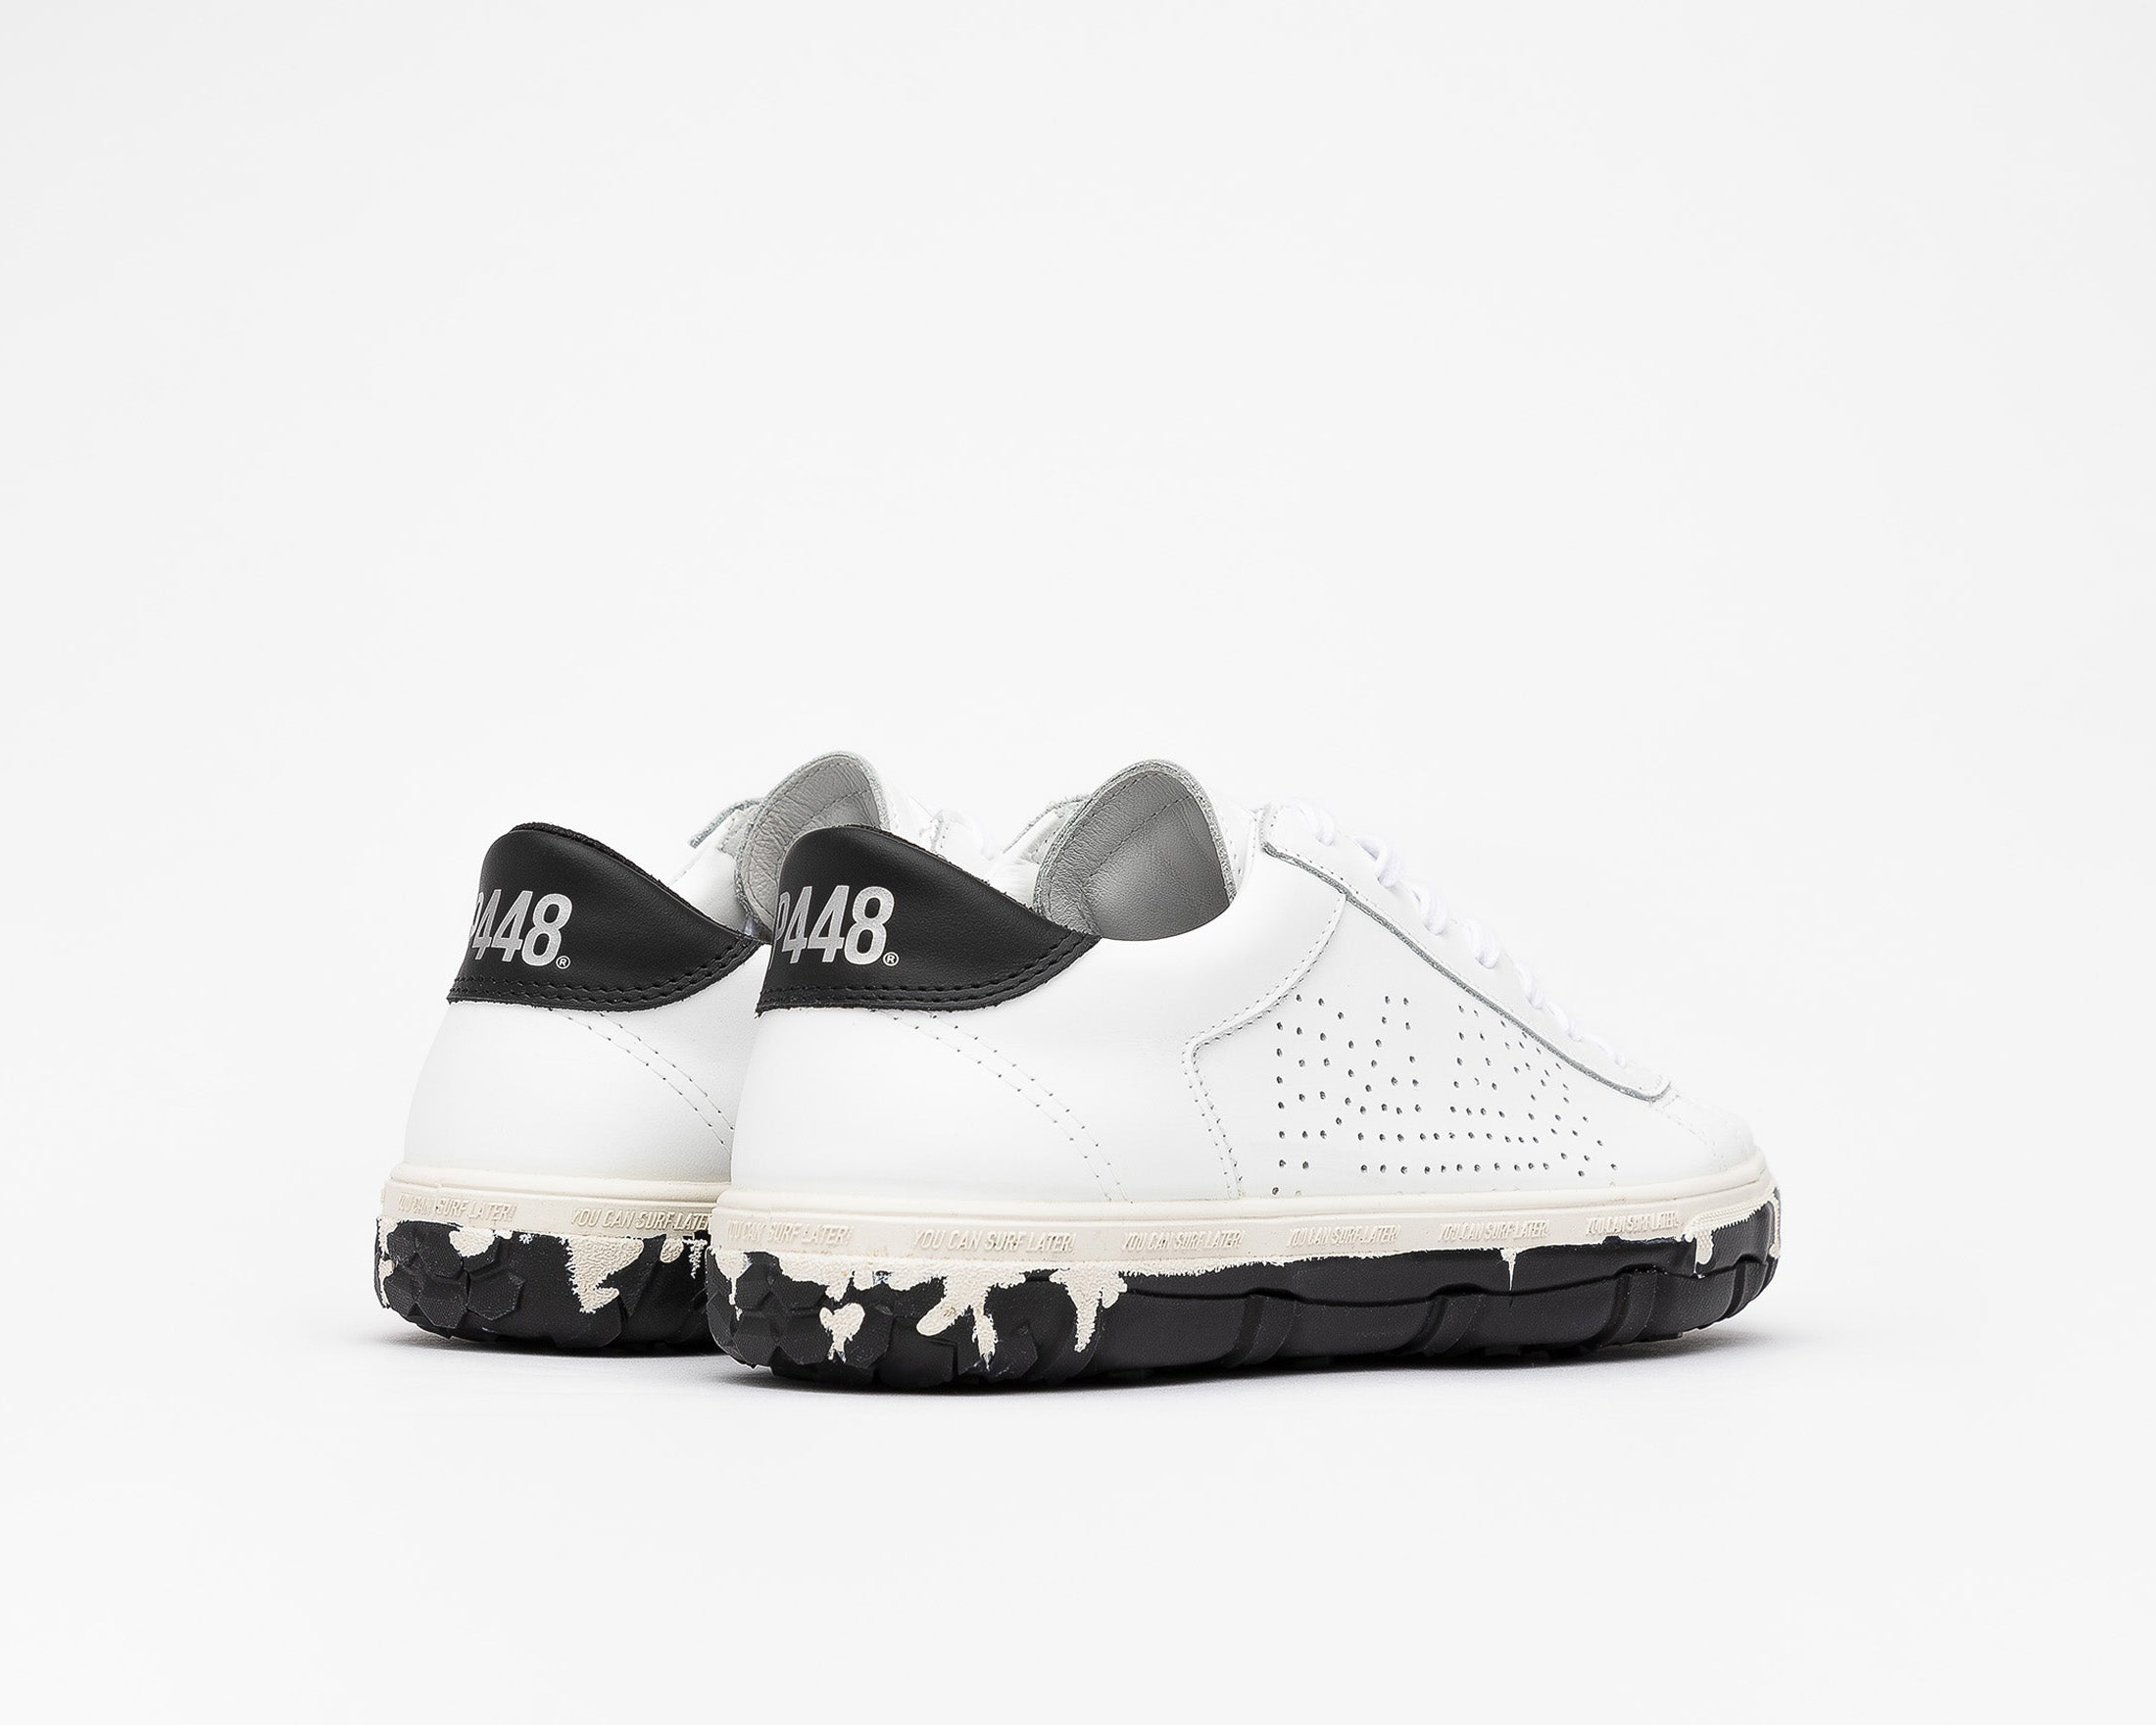 Y.C.S.L. Vibram Low-Top Sneaker in White/Black - Back